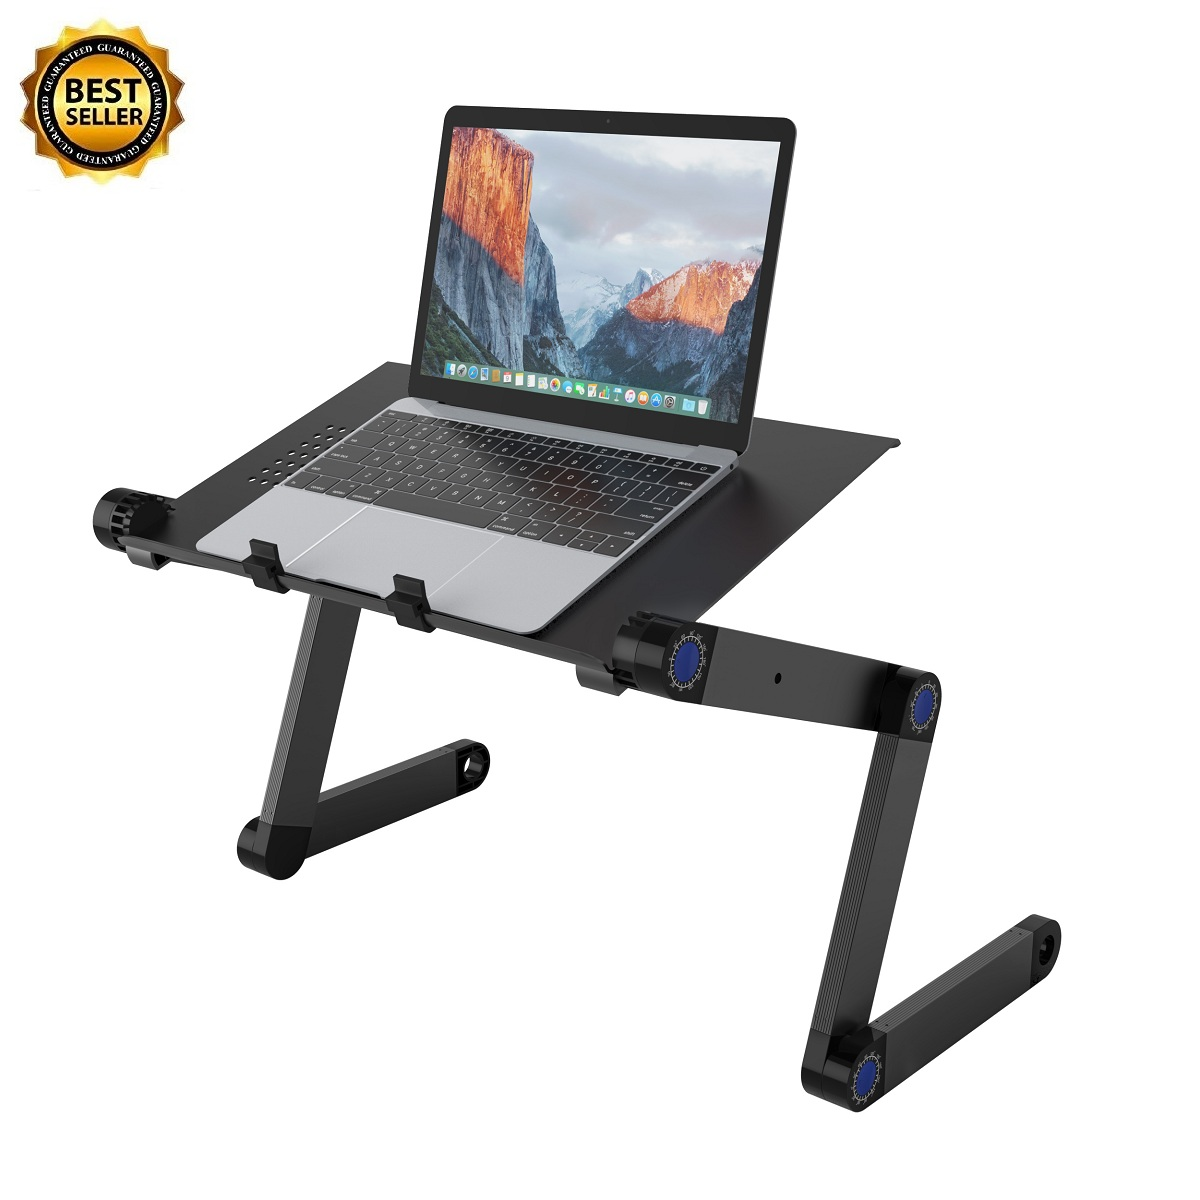 SLYPNOS Adjustable Laptop Stand Folding Portable Standing Desk Ventilated Aluminum Laptop Riser Tablet Holder Notebook Tray with 2 Edge Stoppers for Desk Bed Couch Sofa Floor, Black